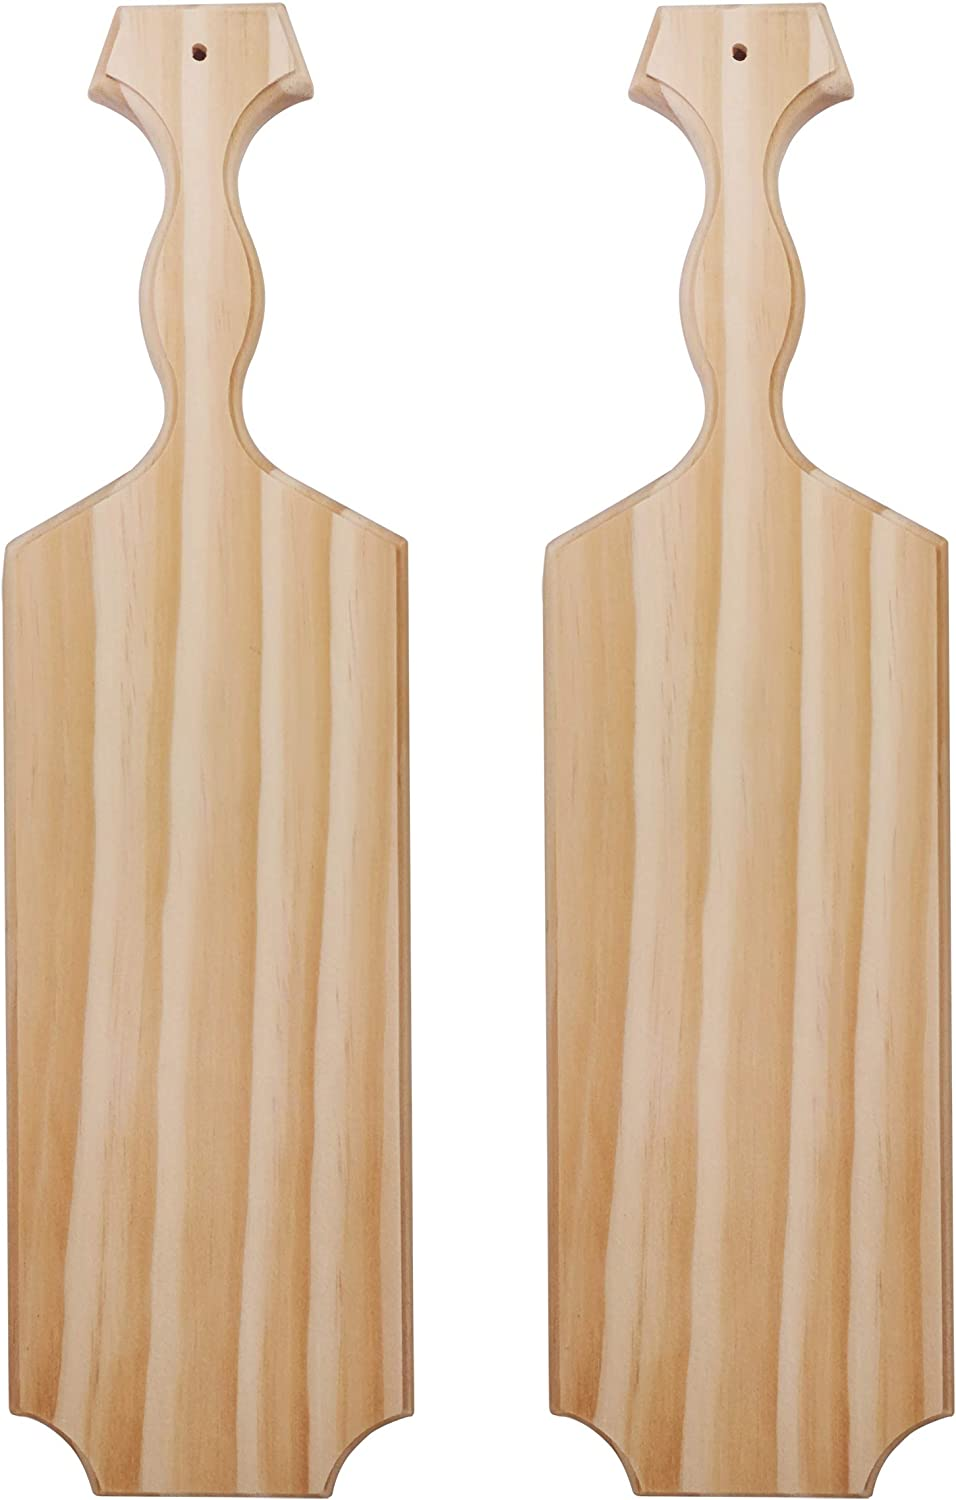 """Yonor 2-Pack Sorority Paddle 15"""" Inch -100% Solid Pine Wooden Greek Fraternity Paddle - Unfinished Solid Wood Paddle (2 PACK-15"""", Natural)"""